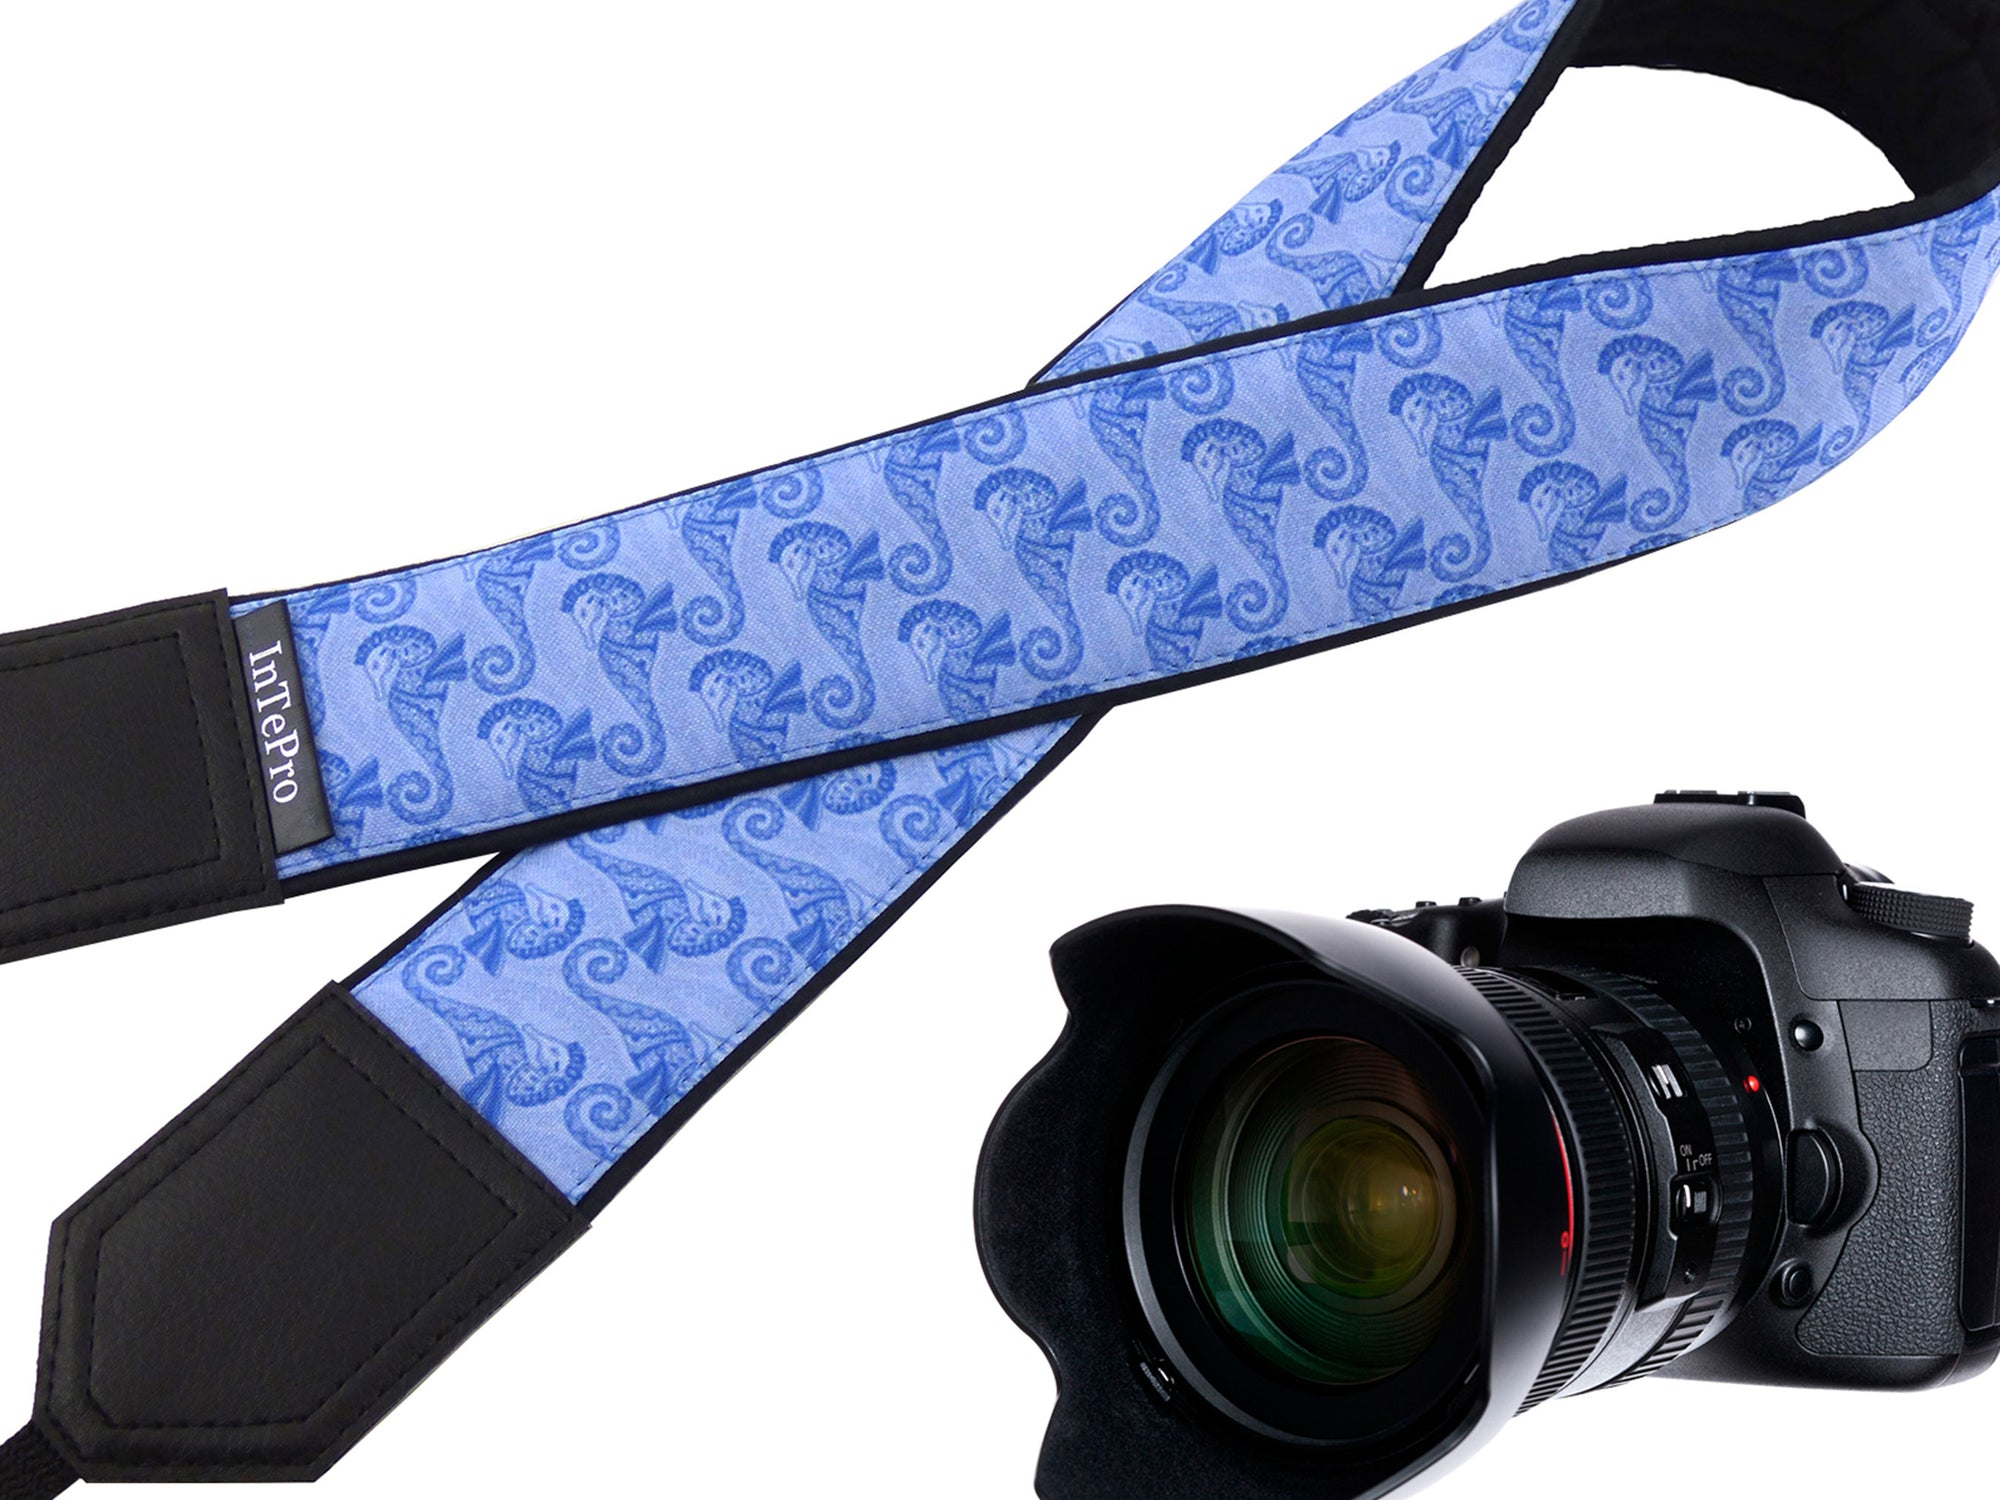 Personalized camera strap with Seahorses design for DSLR and SLR Cameras.